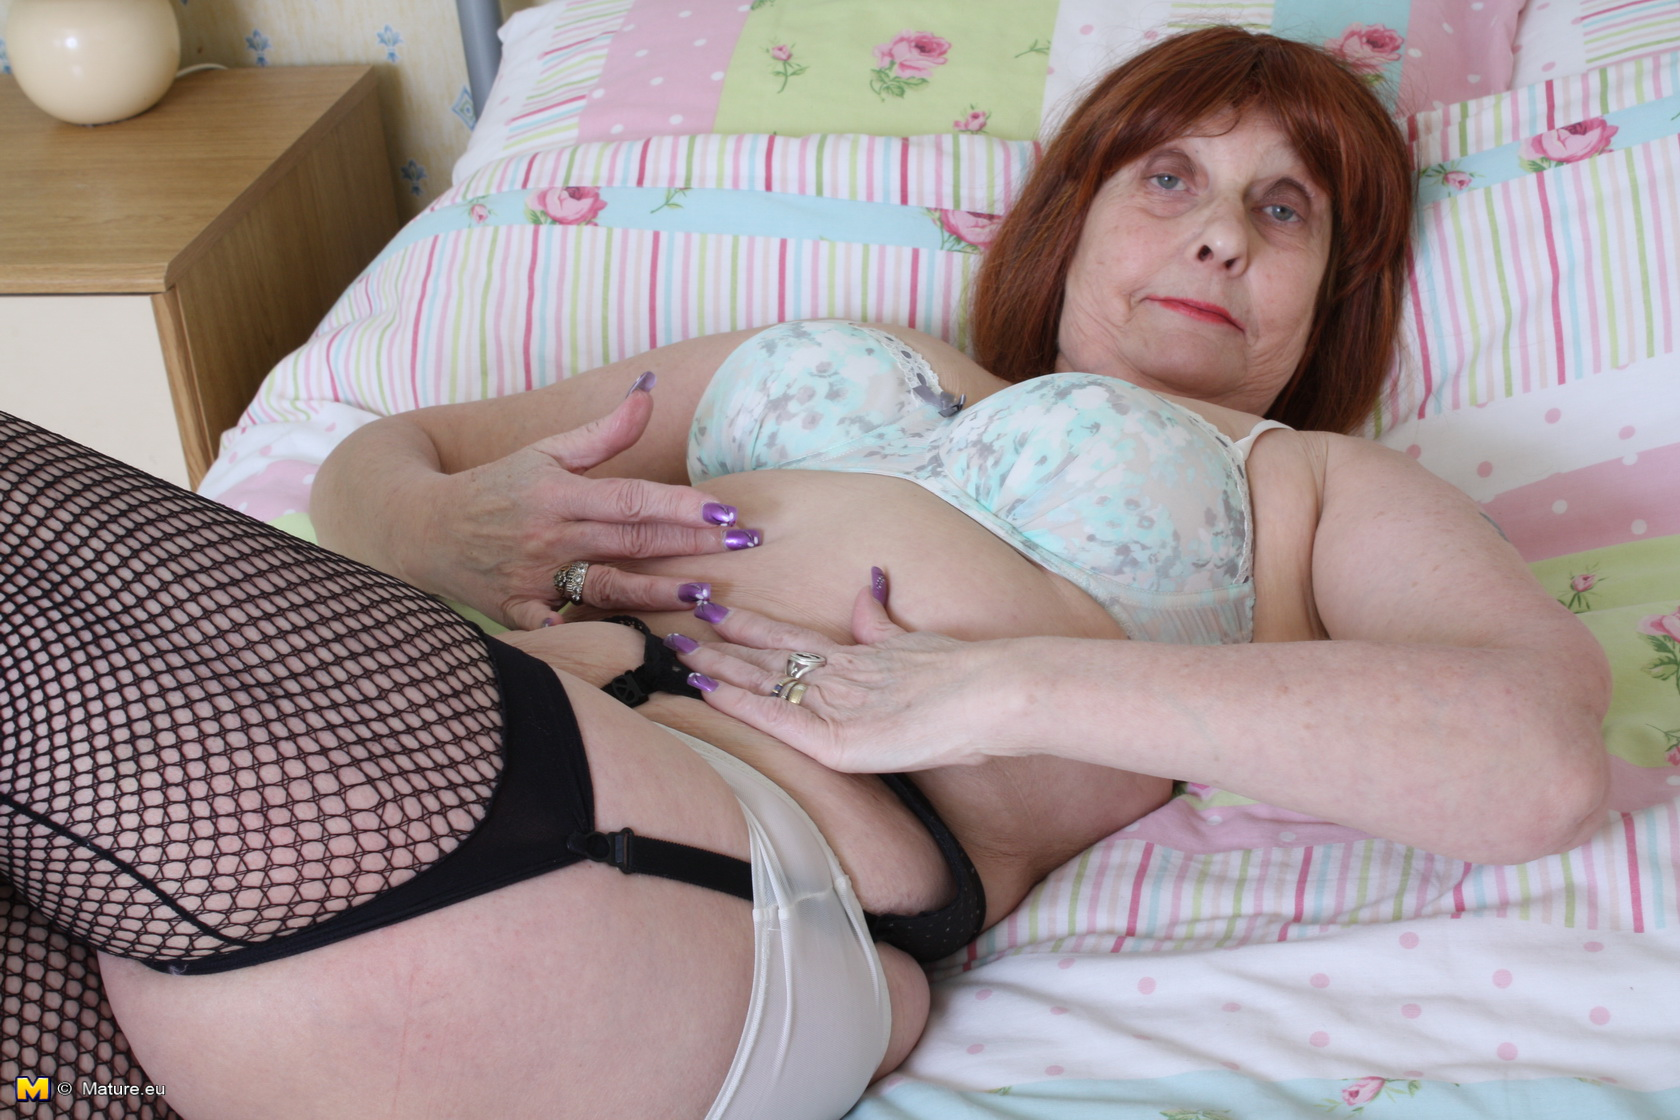 Wild Brit mature doll getting raw on her couch